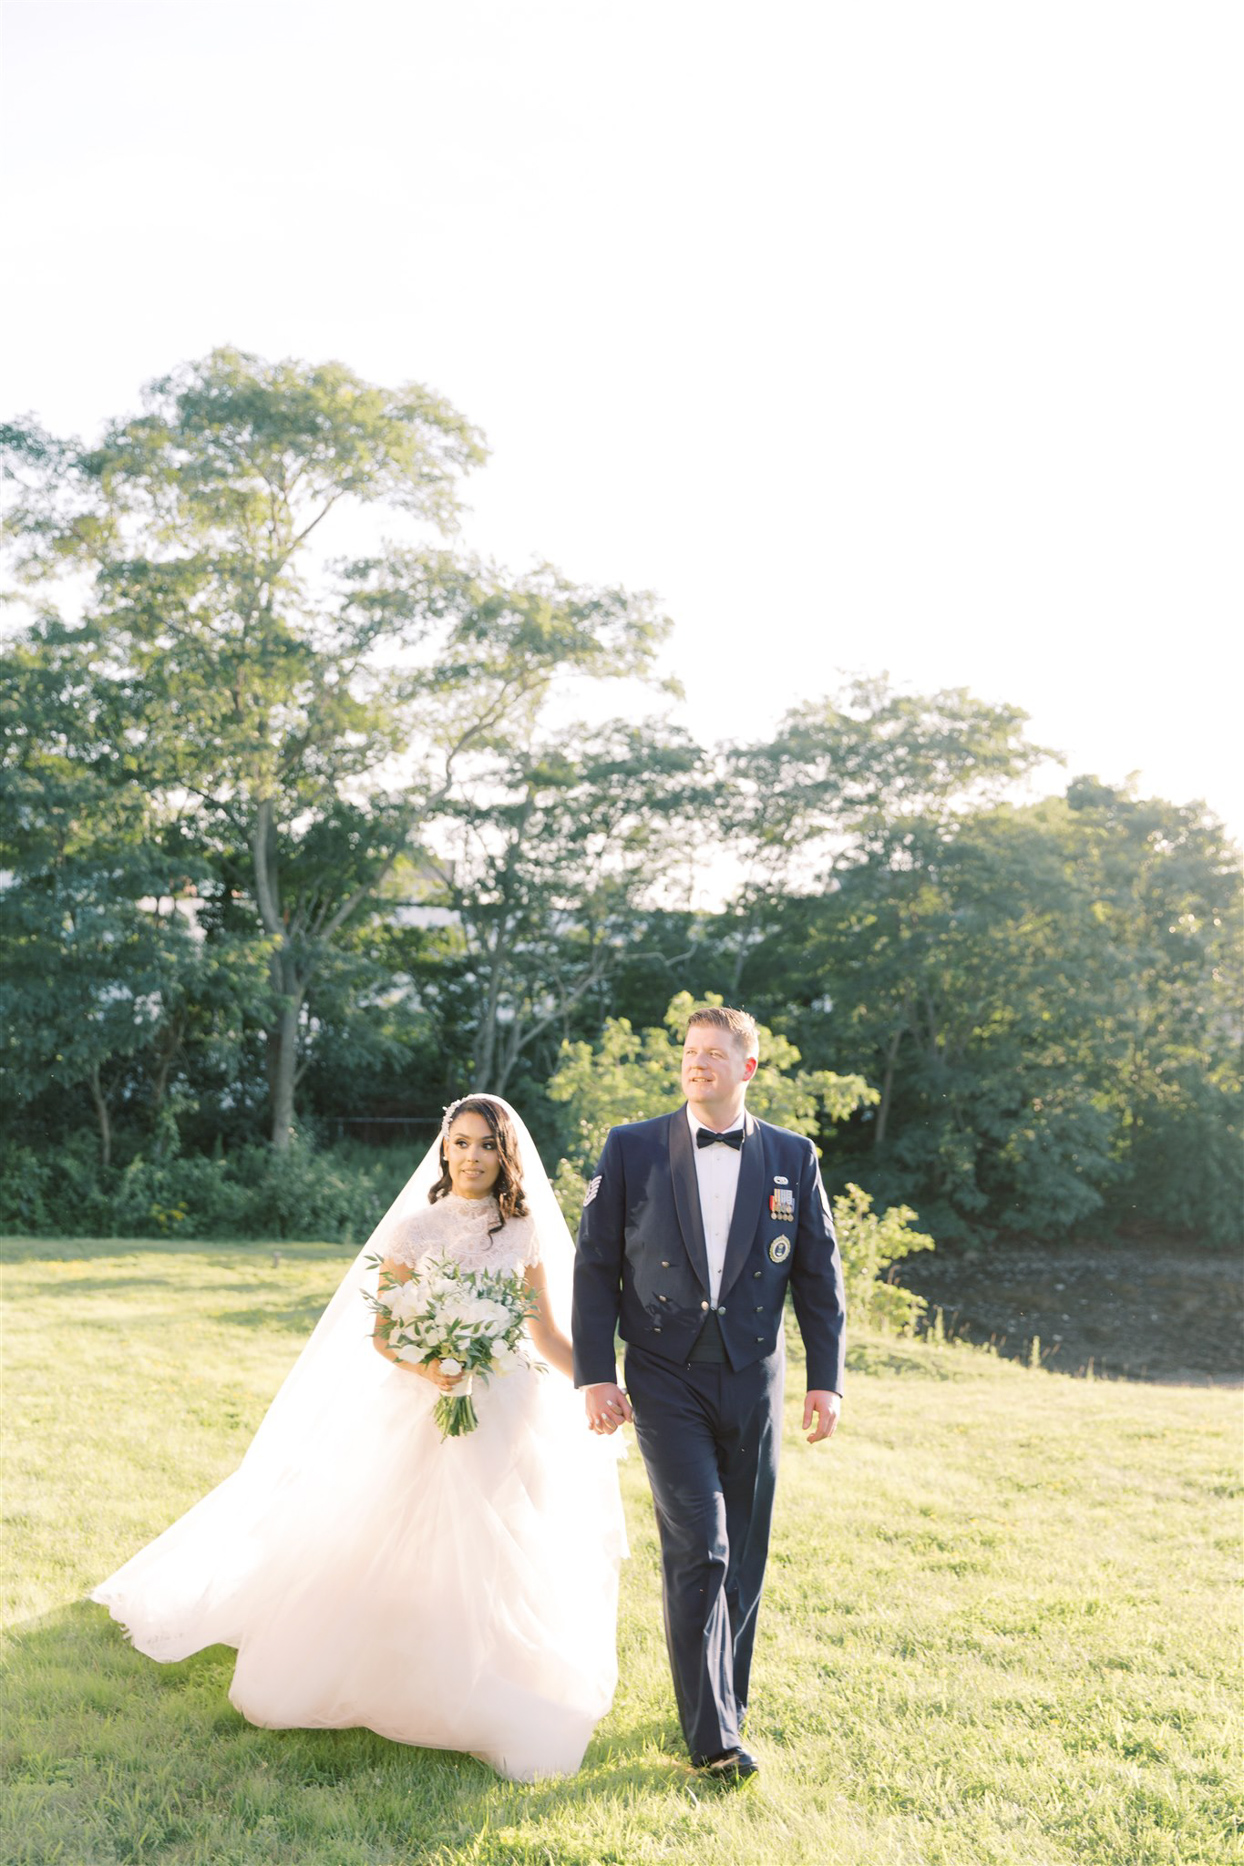 bride and groom smiling walking on grass outside